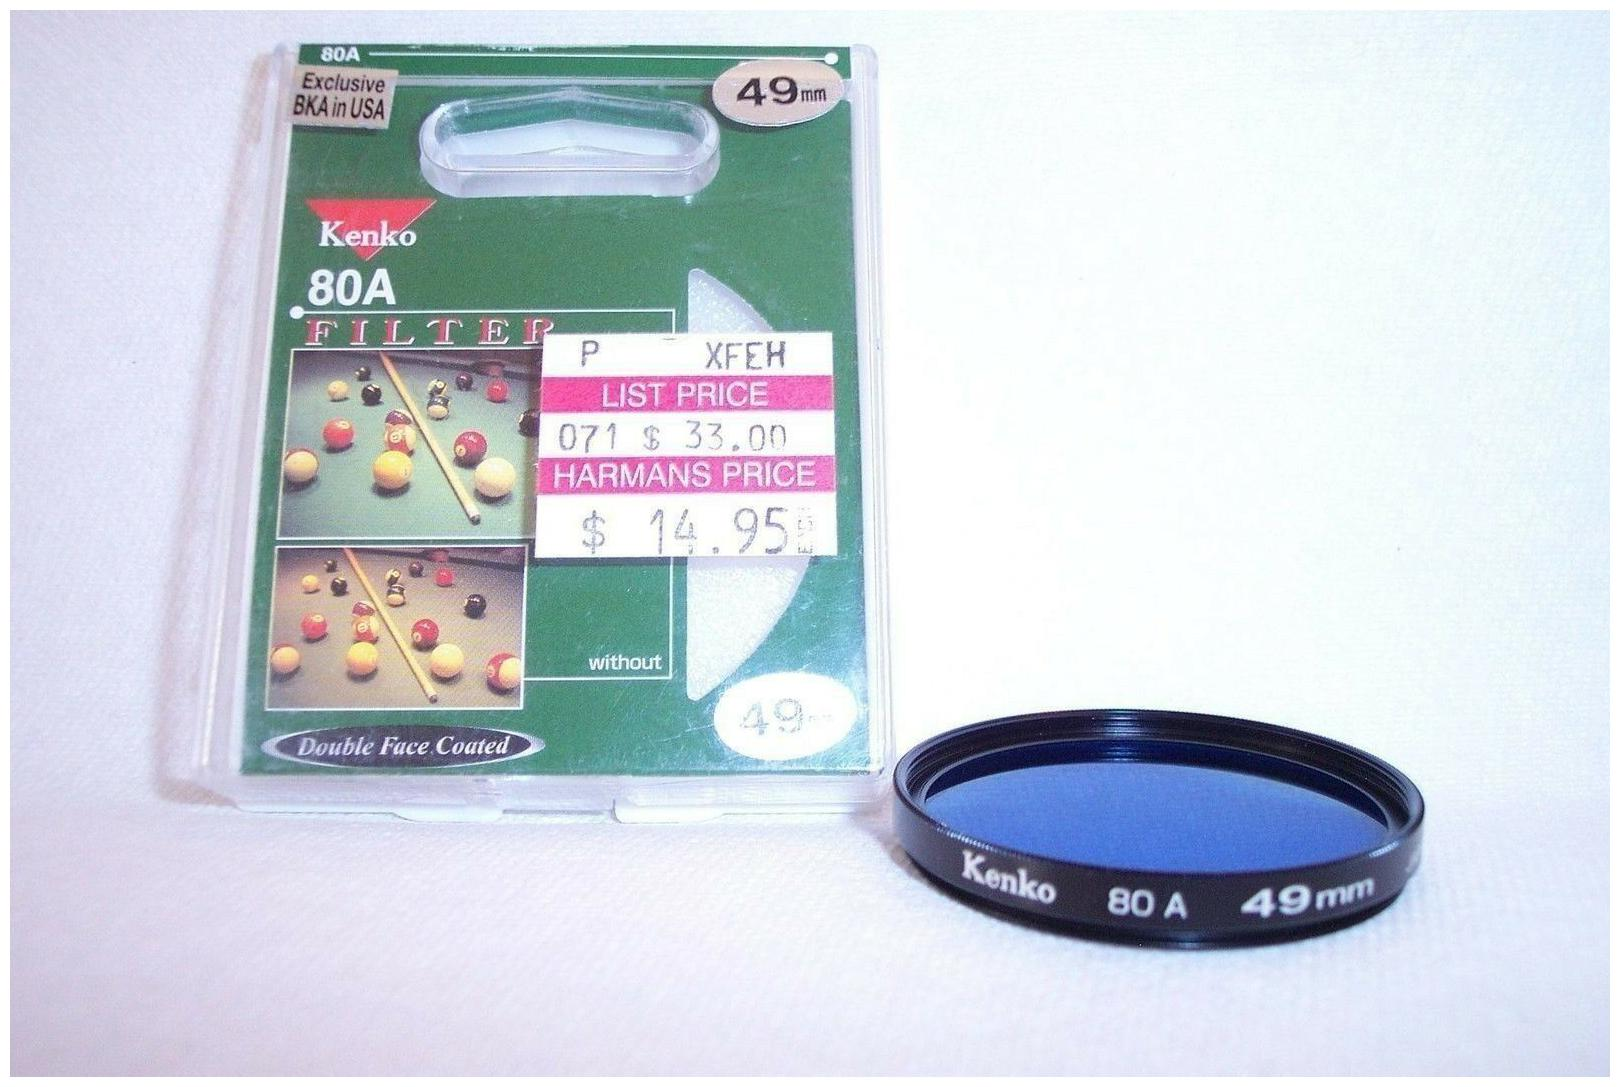 Kenko 49 mm NEW 80A Screw In Filter with Case Made in Japan  K 209